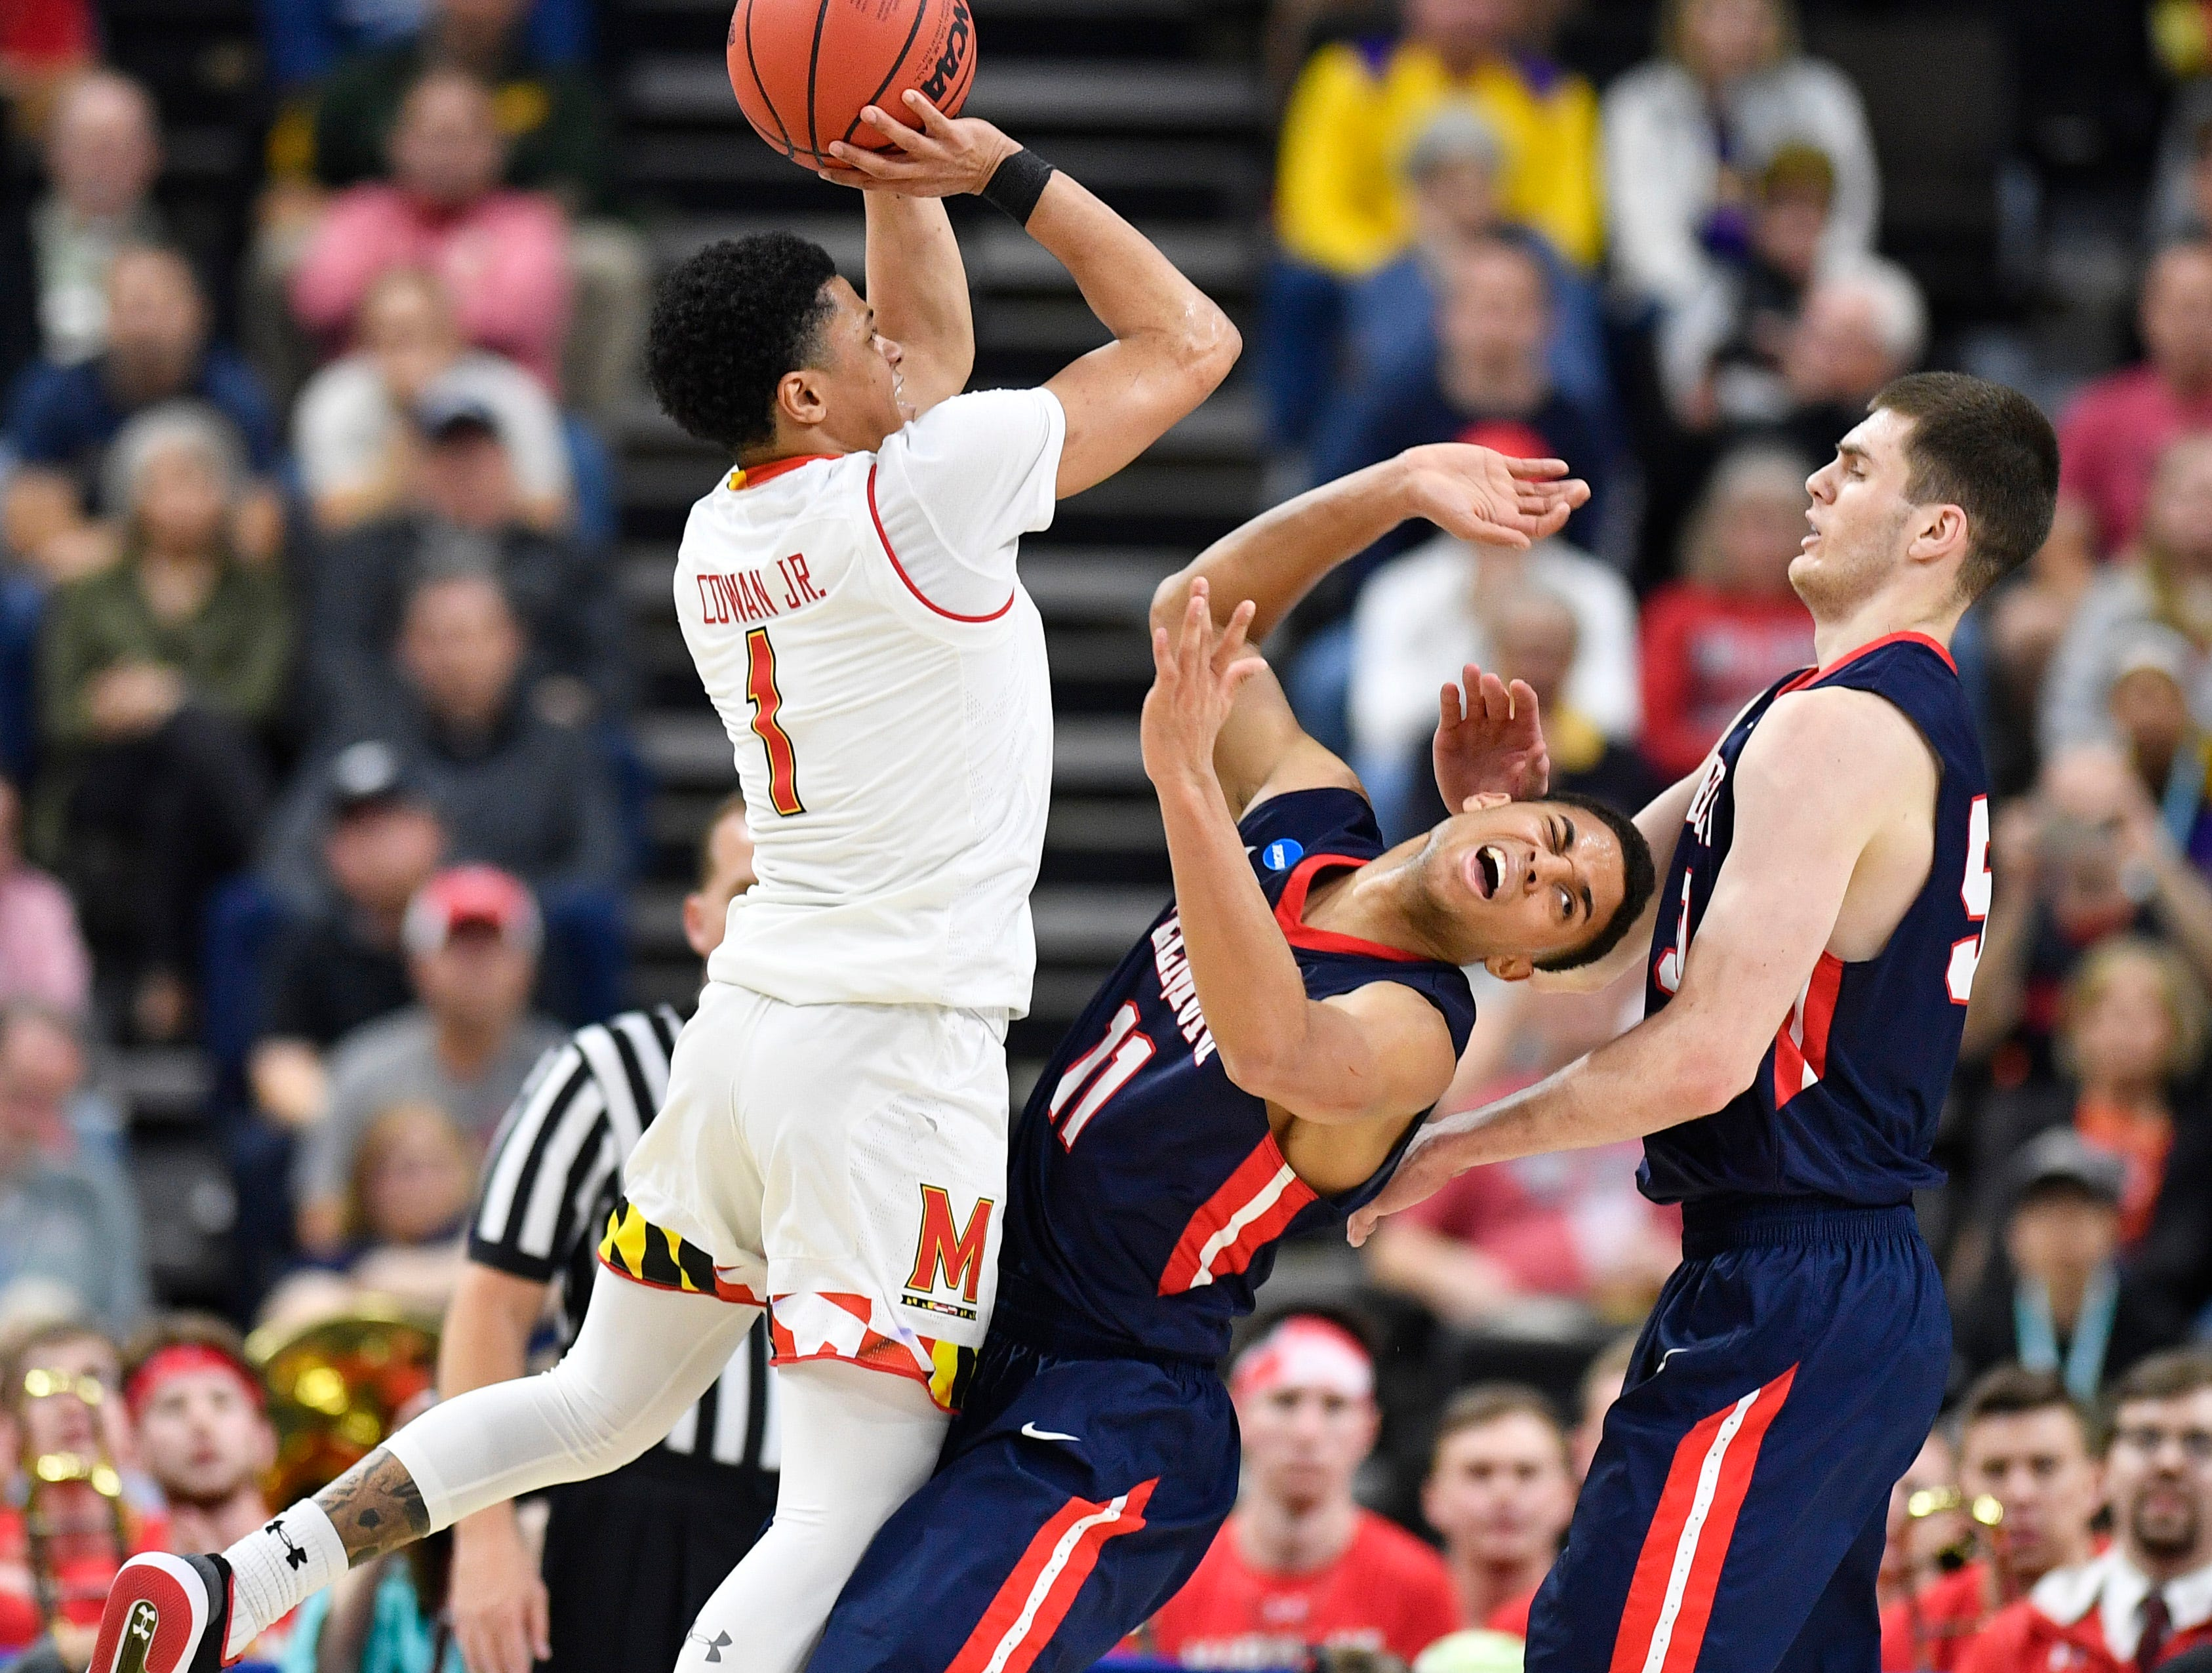 Maryland guard Anthony Cowan Jr. (1) shoots over Belmont guard Kevin McClain (11) during the second half of the first-round NCAA college basketball tournament game at VyStar Veterans Memorial Arena in Jacksonville, Fla., Thursday, March 21, 2019.